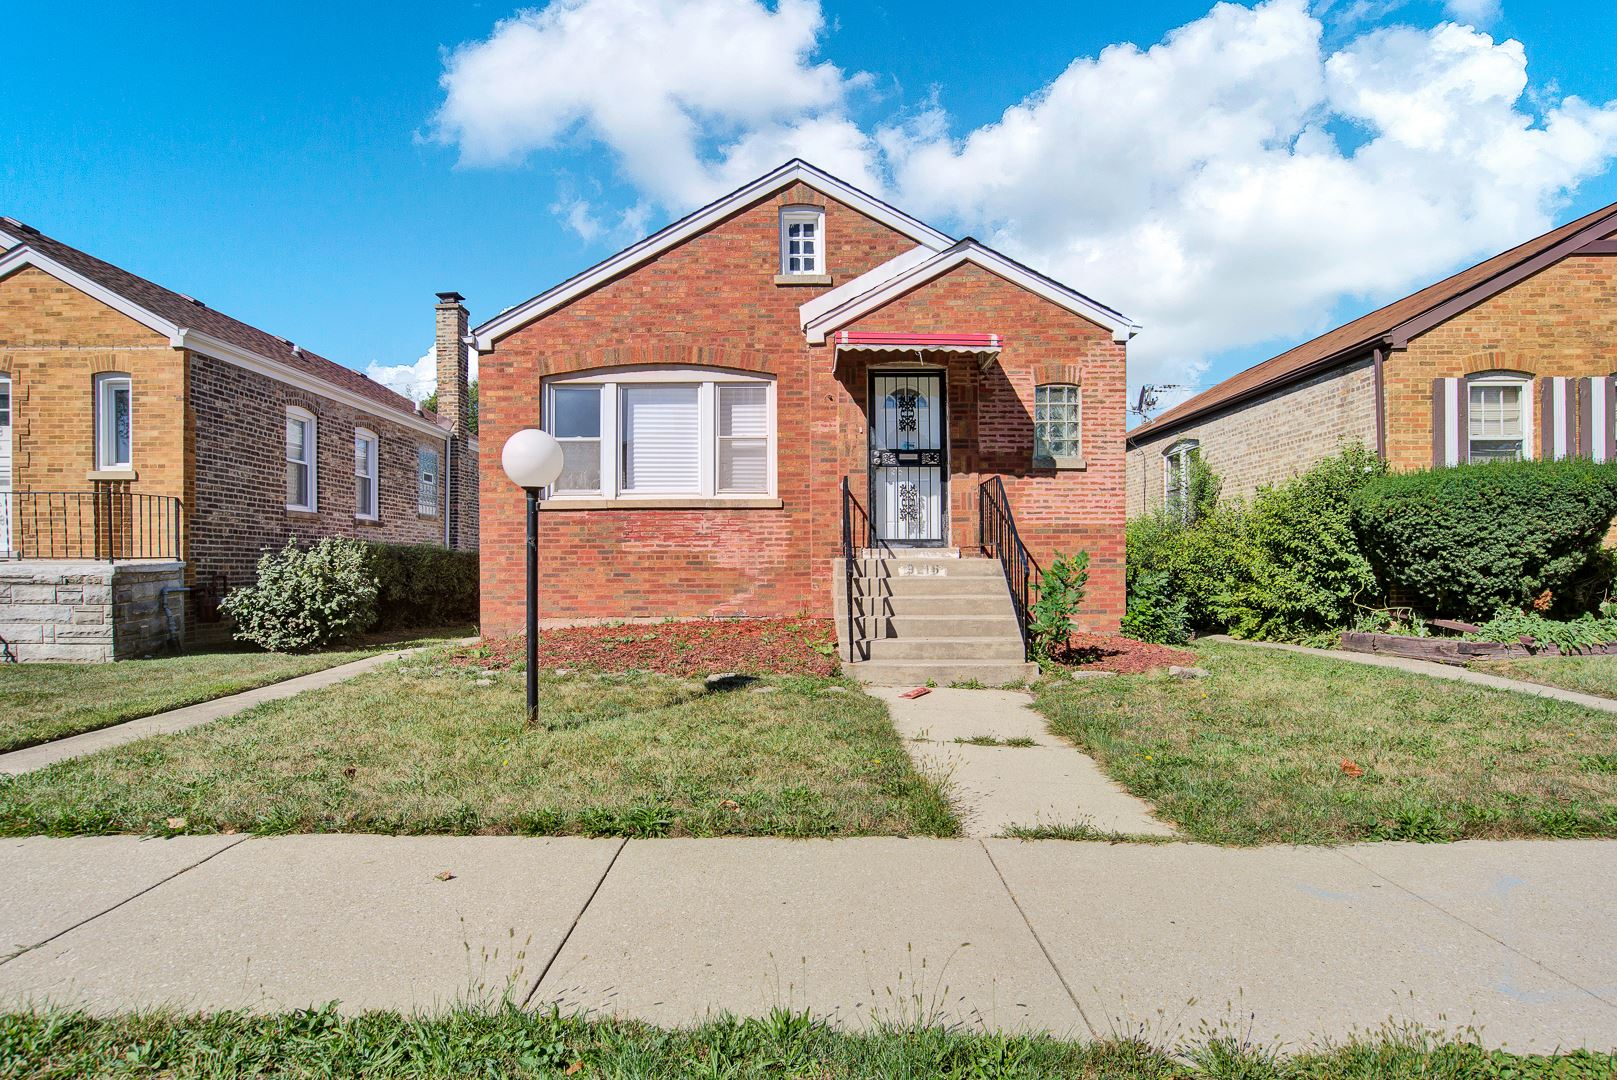 Photo for 9216 S Lowe Avenue, Chicago, IL 60620 (MLS # 11215799)